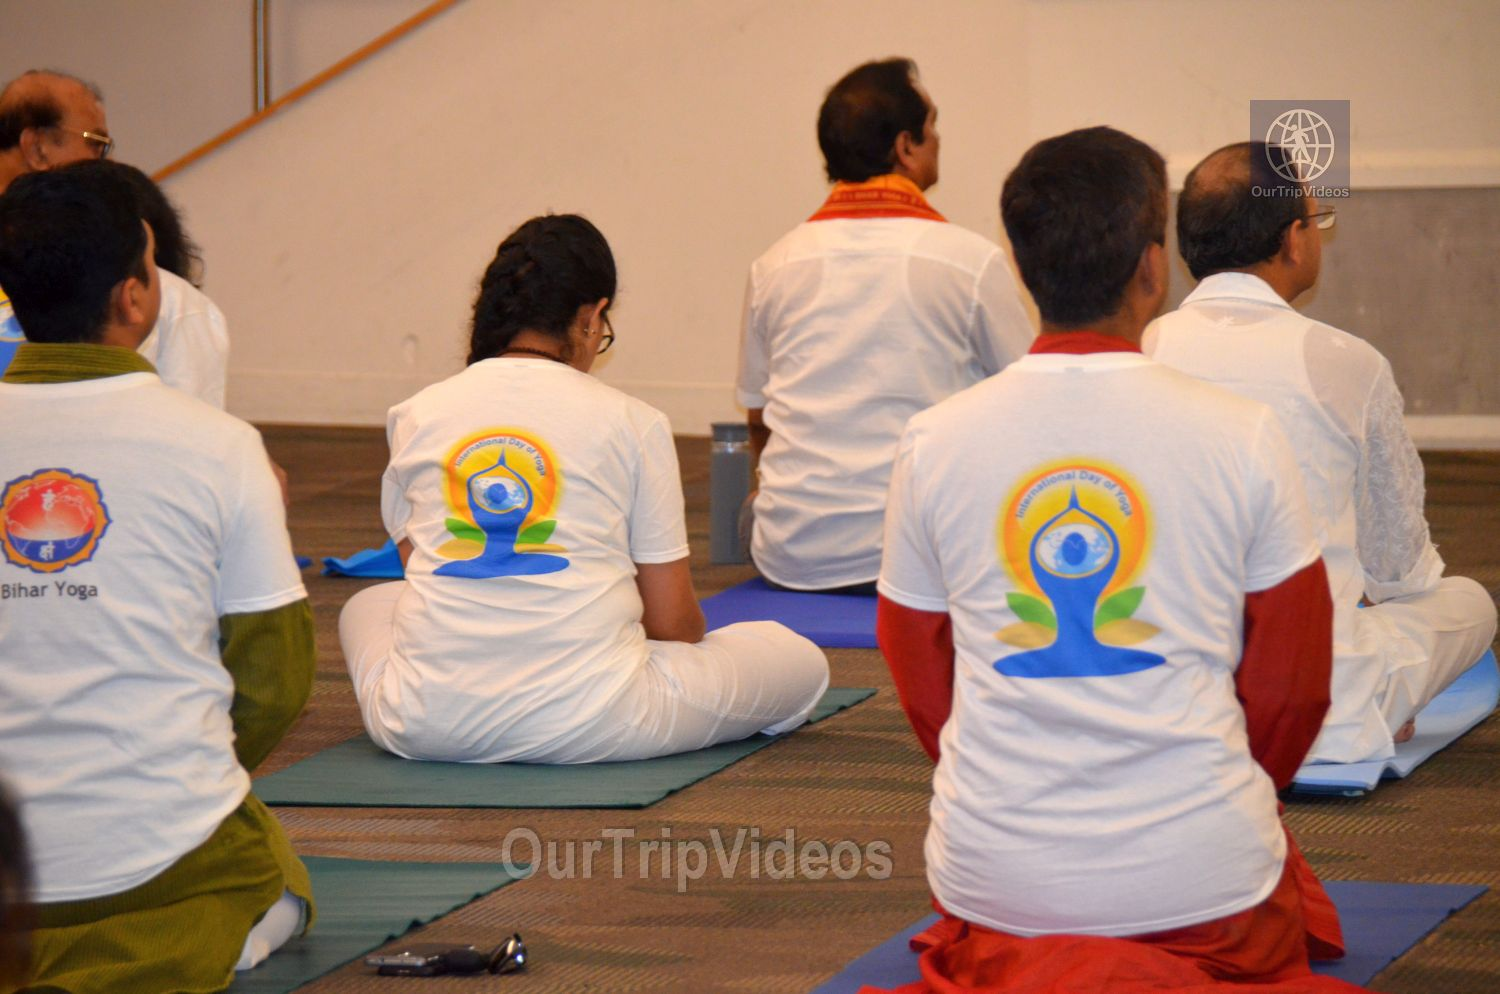 International Yoga Day at ICC, Milpitas, CA, USA - Picture 5 of 25